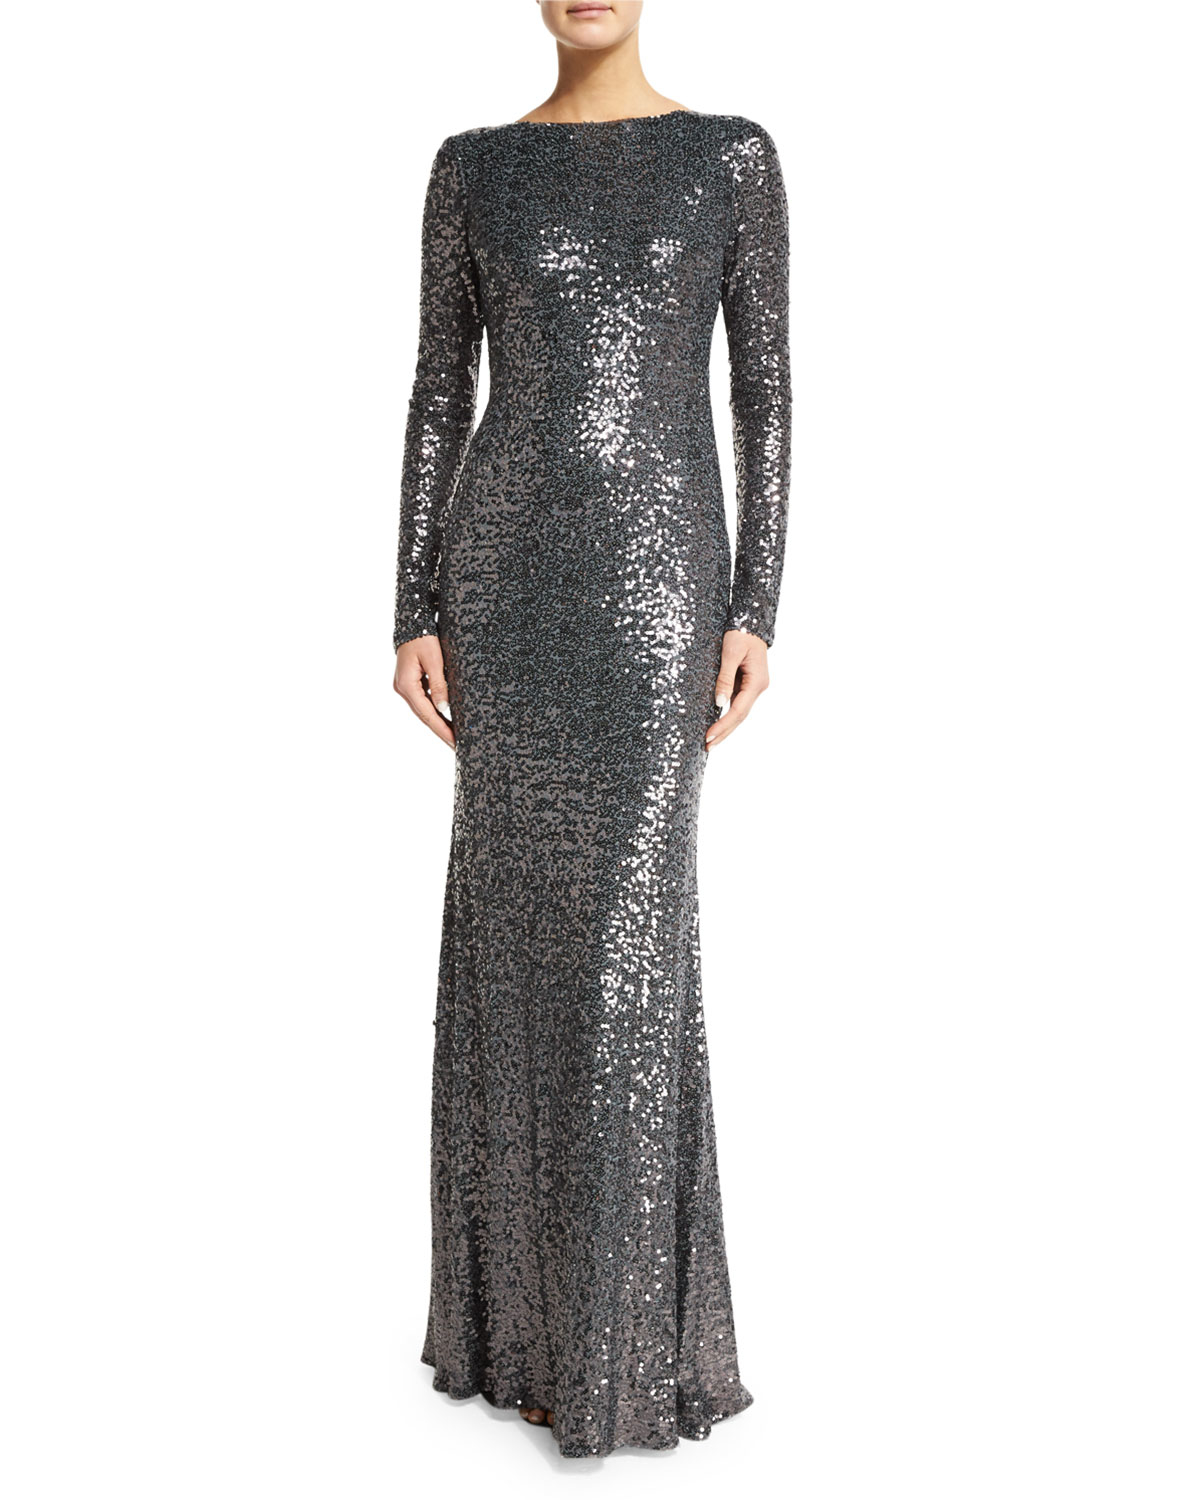 Lyst Badgley Mischka Long Sleeve Cowl Back Sequined